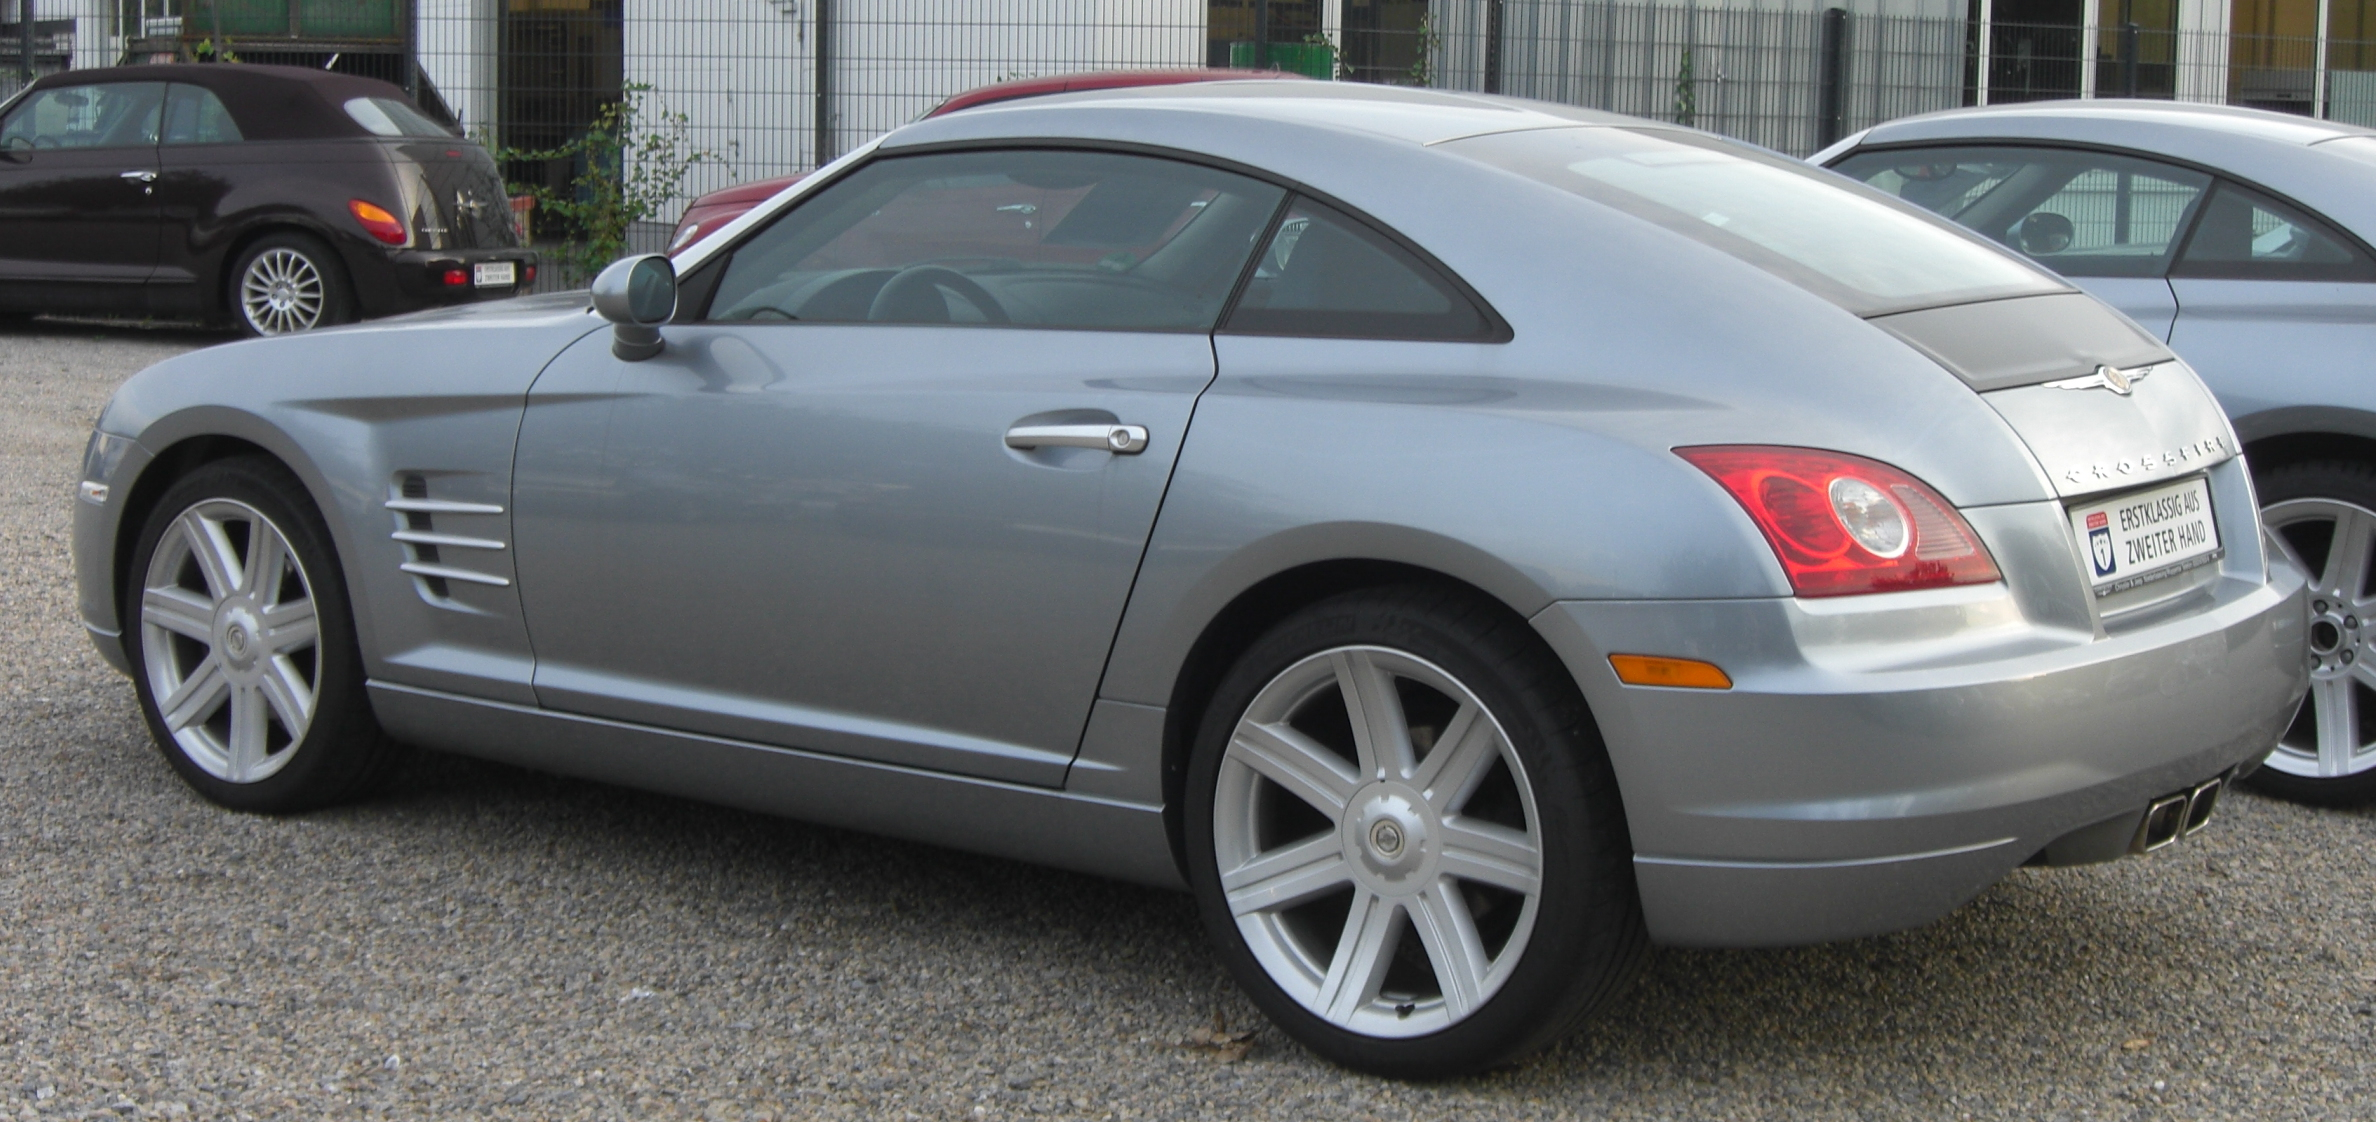 Chrysler Crossfire #3